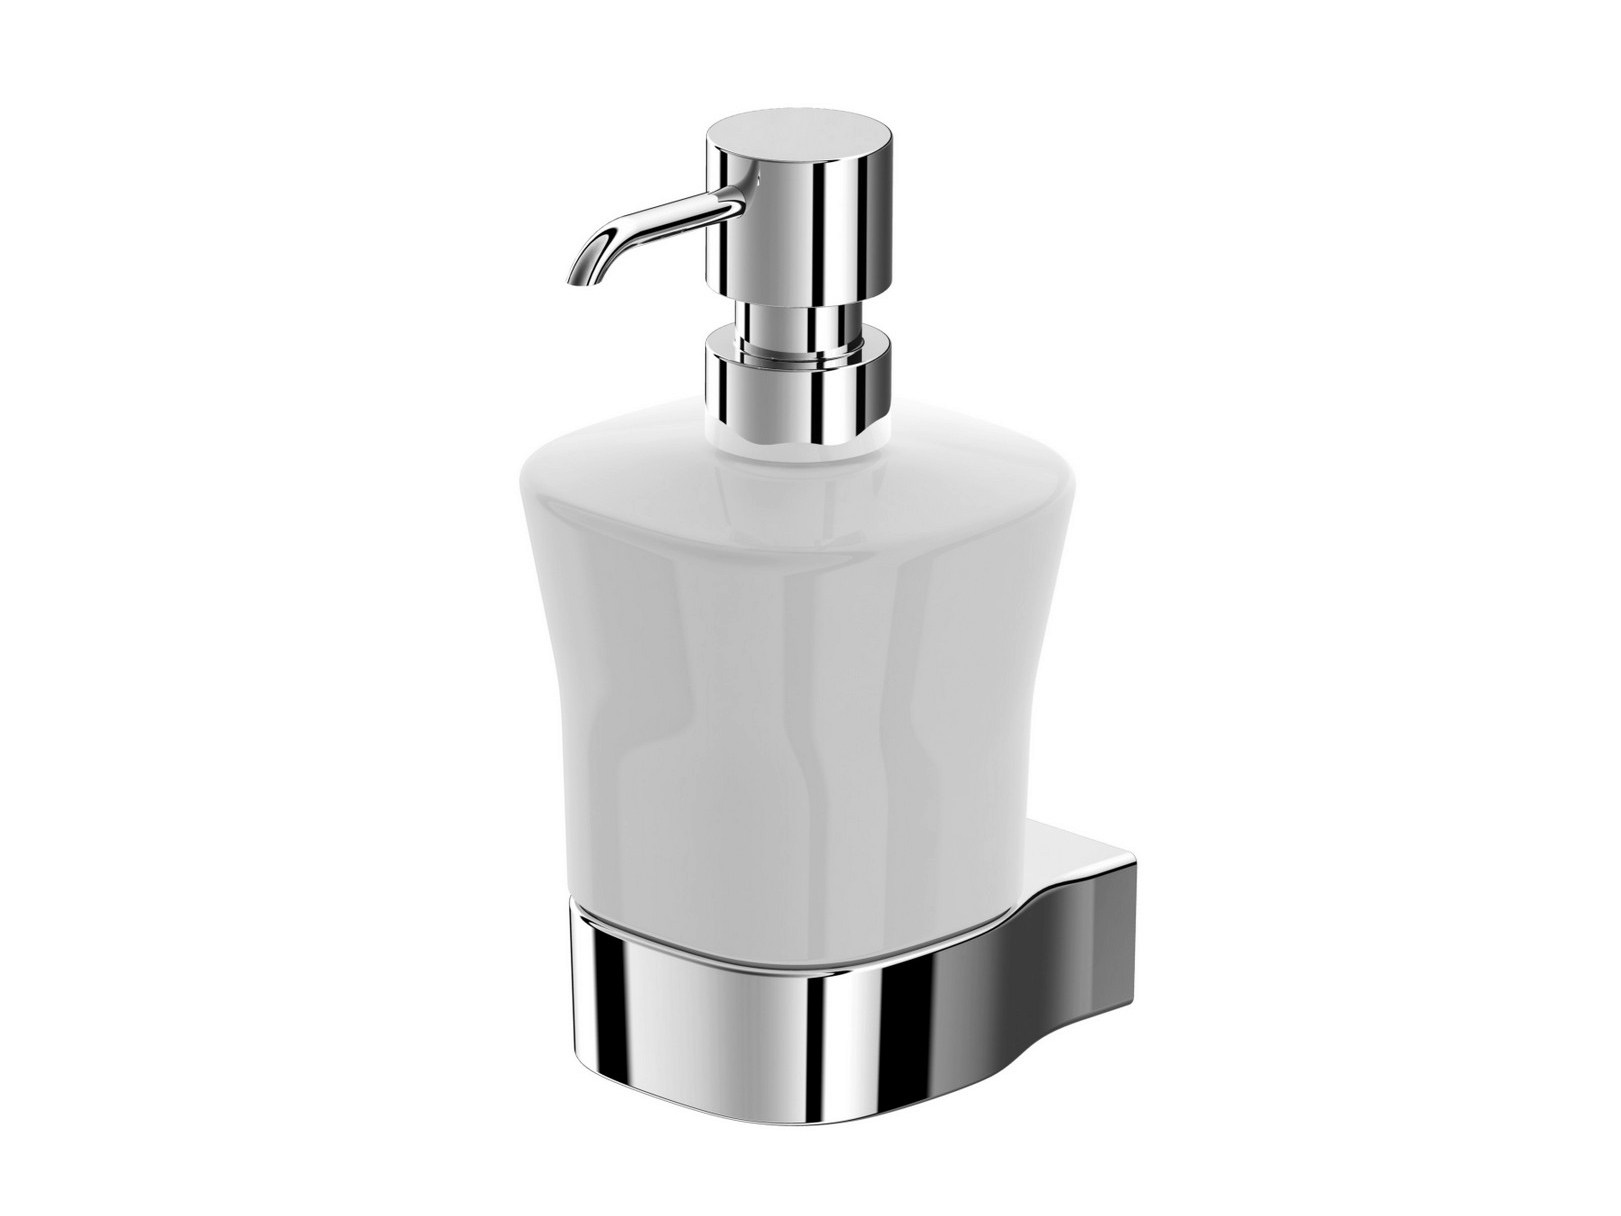 mh wall mounted liquid soap dispenser by toto. Black Bedroom Furniture Sets. Home Design Ideas